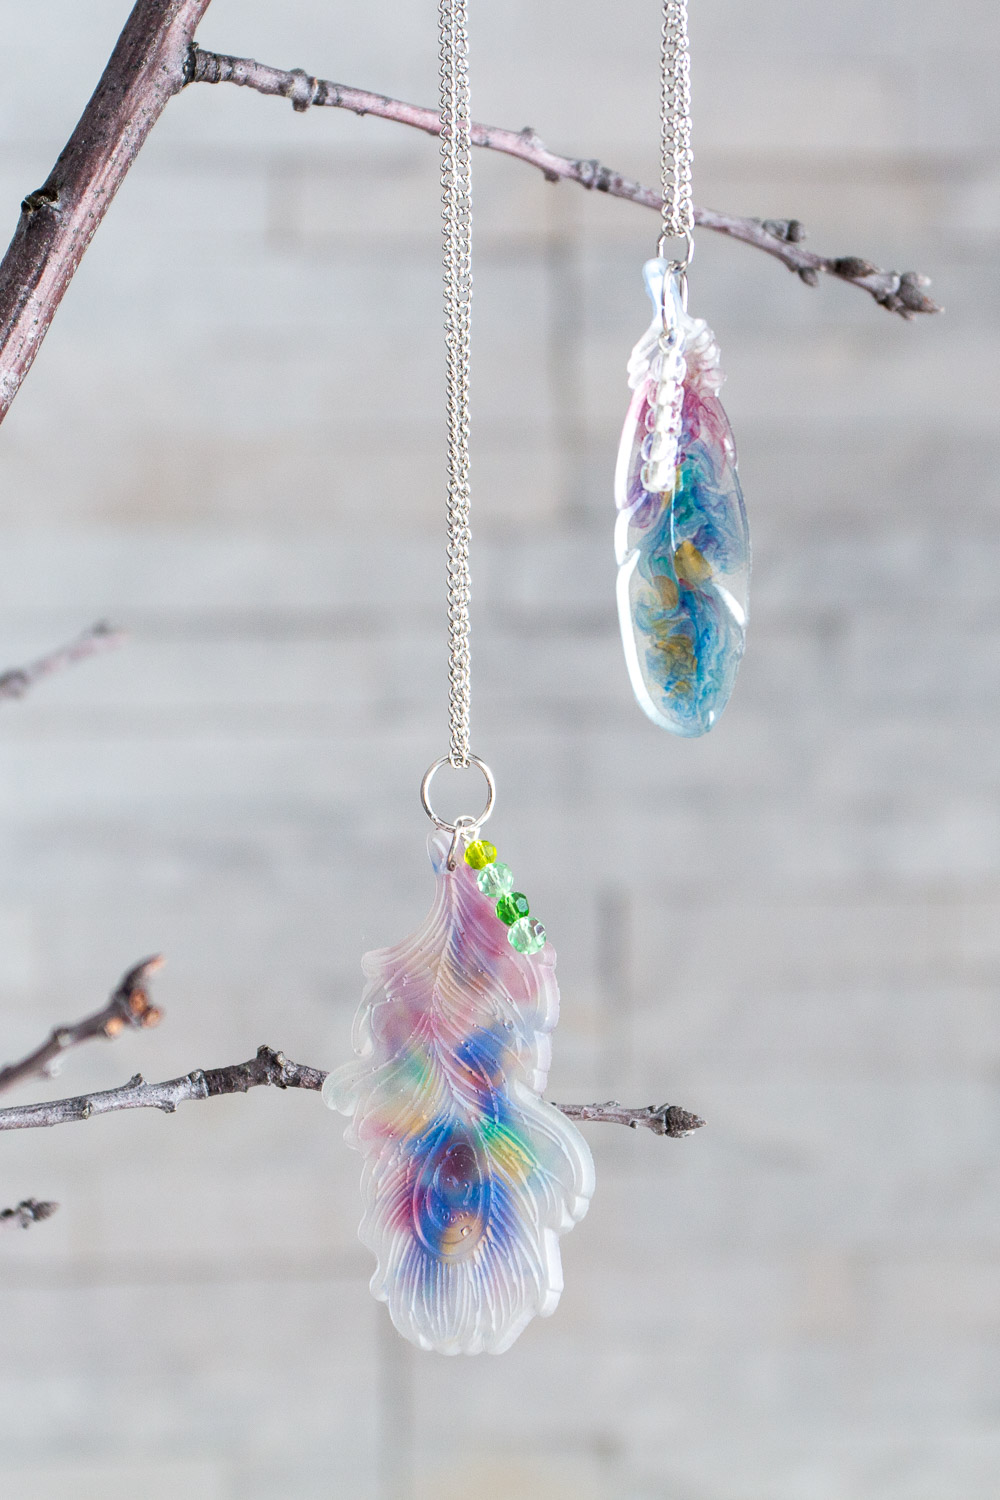 These DIY resin feather pendants are a fun way to add a little nature to your wardrobe. With a faux watercolor effect, these pretty and earthy pendants would make the perfect boho style accessory.